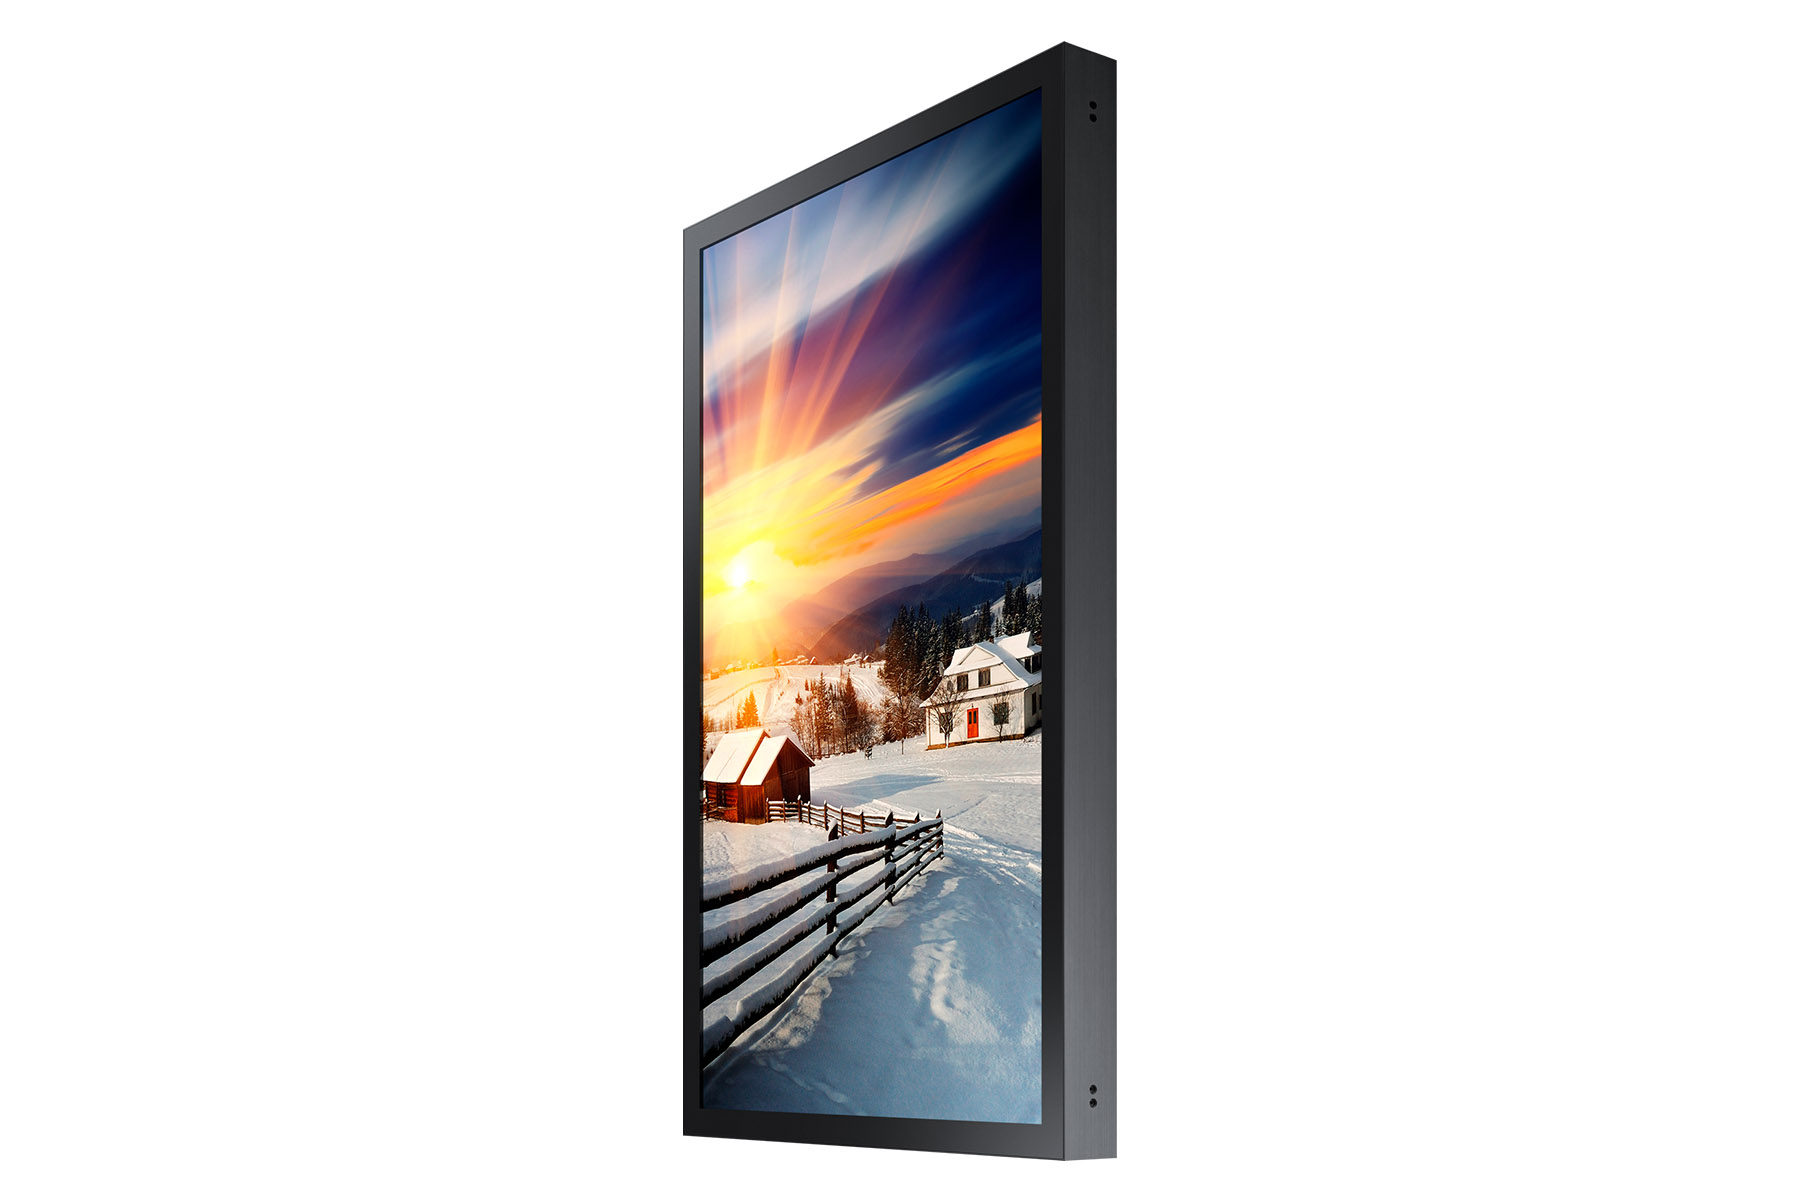 85 zoll lcd outdoordisplay samsung oh85f neuware kaufen. Black Bedroom Furniture Sets. Home Design Ideas